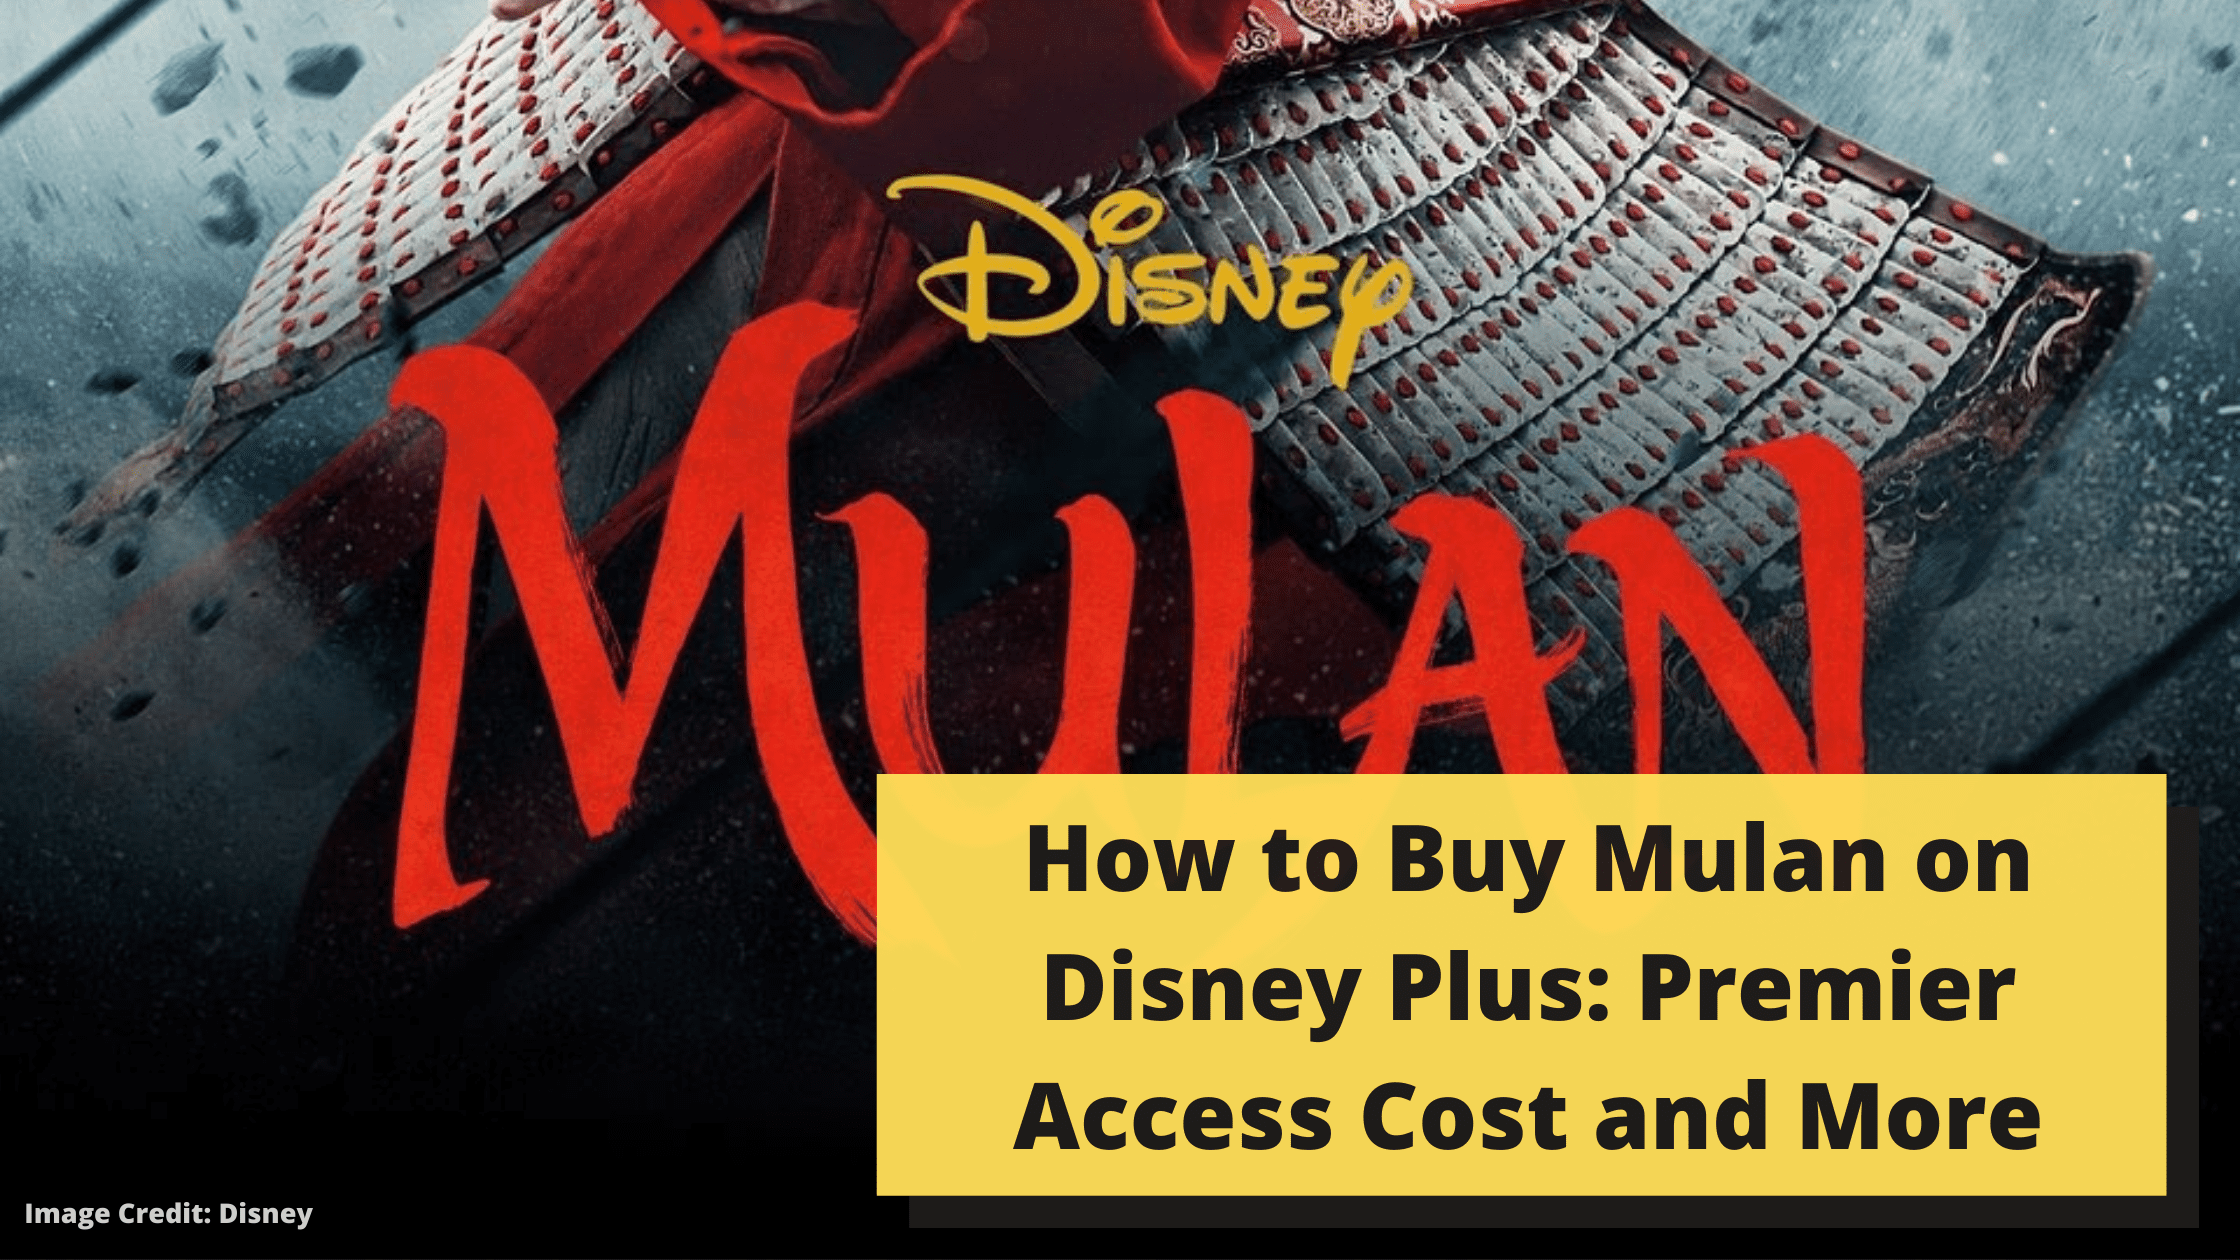 How to Buy Mulan on Disney Plus: Premier Access Cost and More